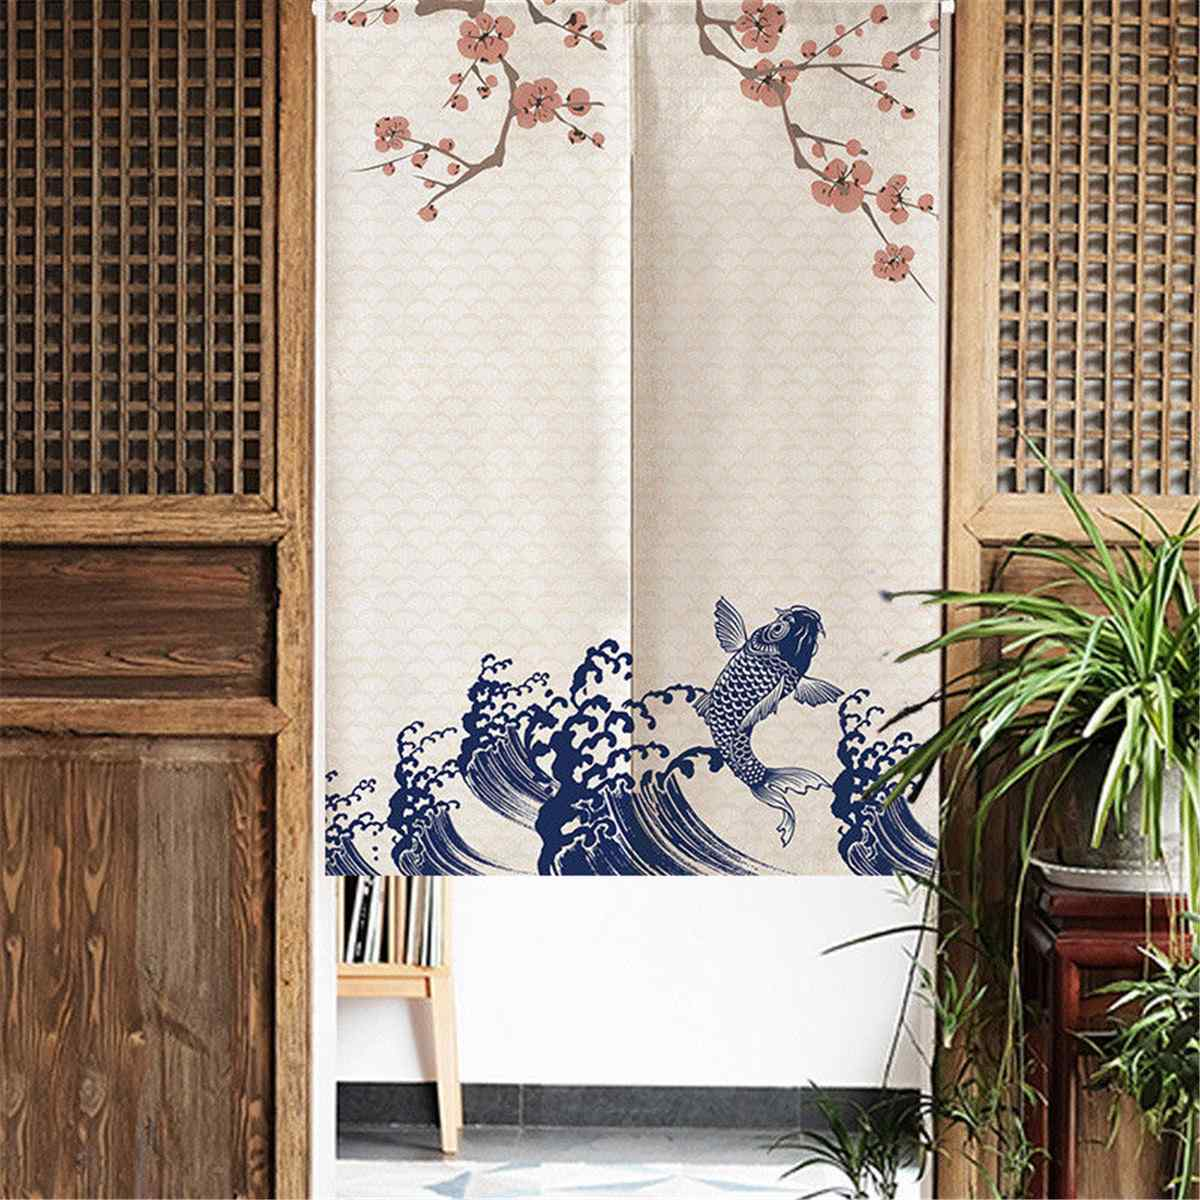 Romantic Blossom Cherry Tapestry Kitchen Curtains Japanese Noren Doorway Curtain 85X150cm Home Decorative Door Curtain